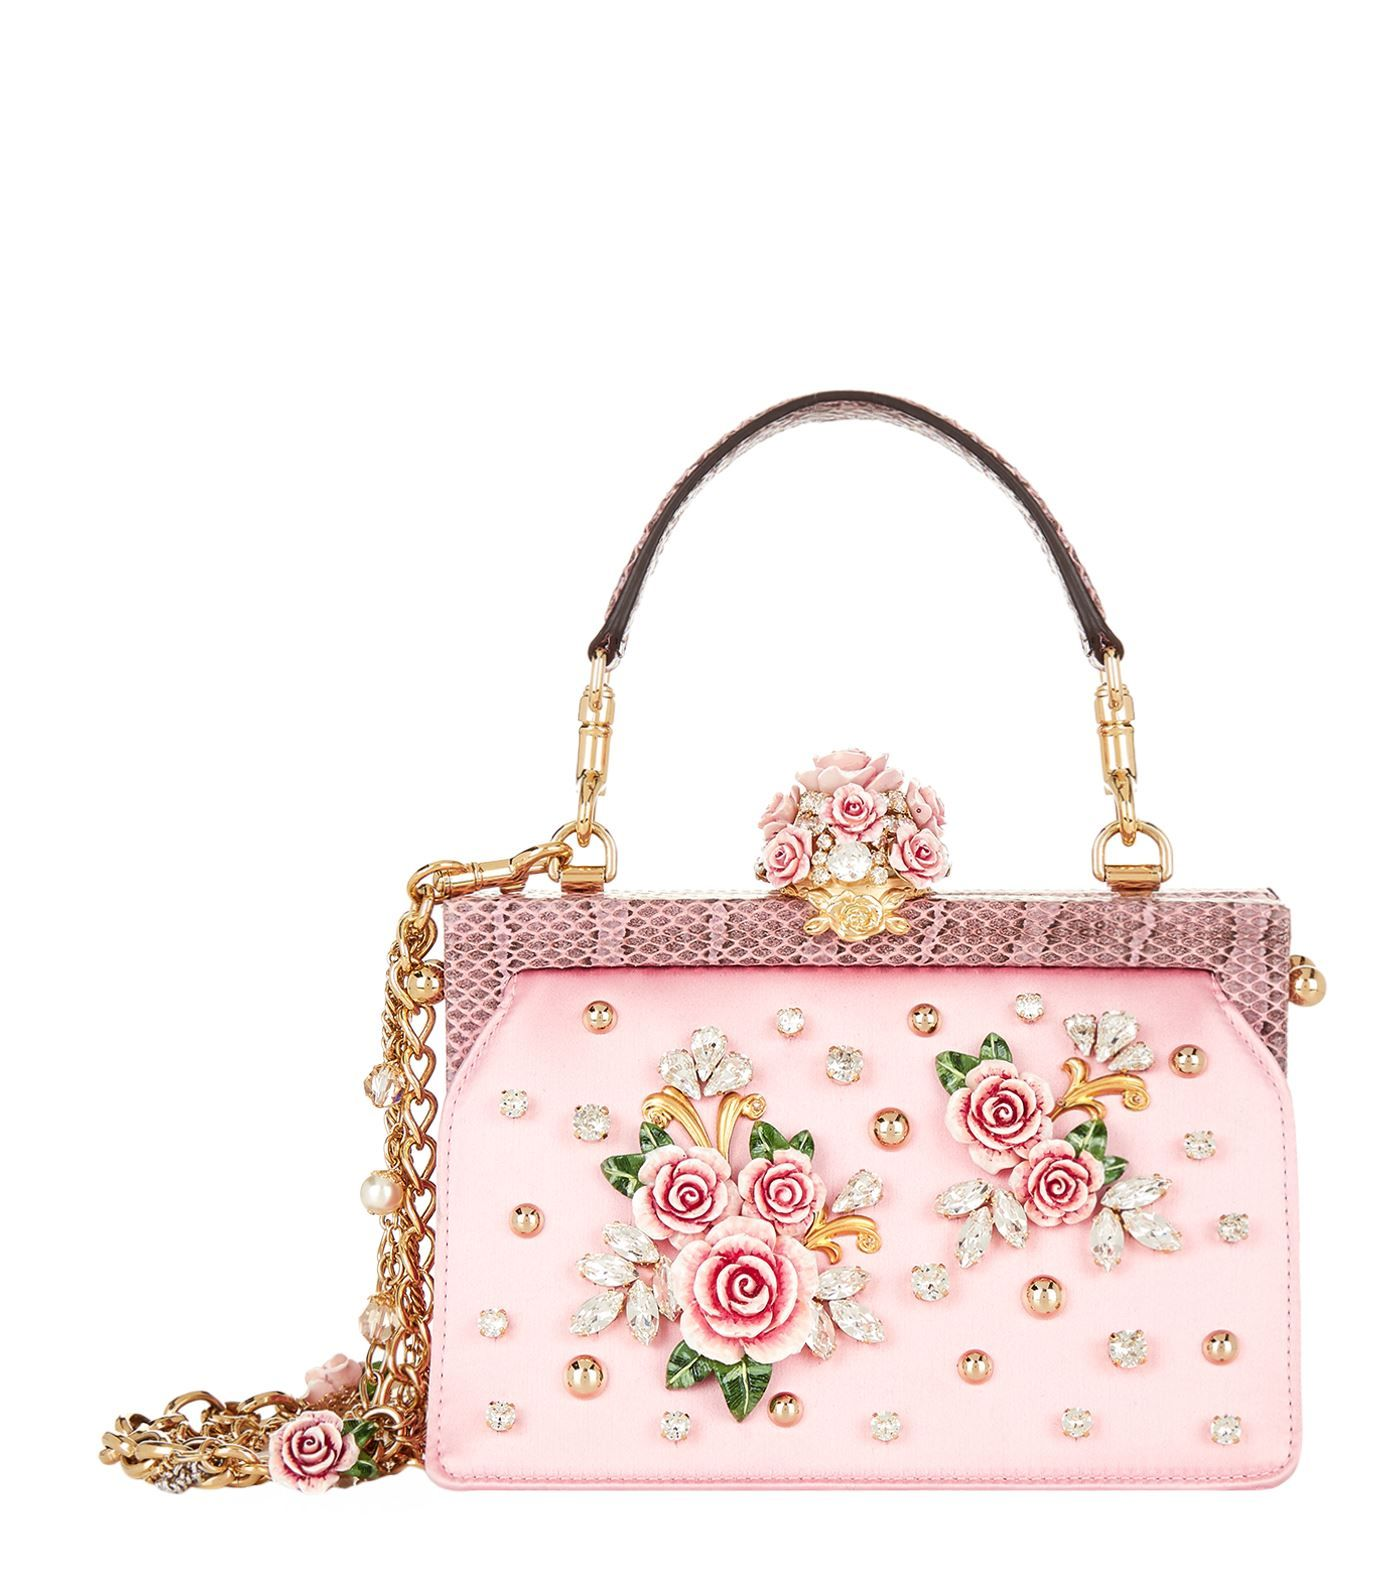 52e99a68bf8 #dolcegabbana #bags #hand bags #. Dolce & Gabbana Satin Rose  Embellished Top Handle ...